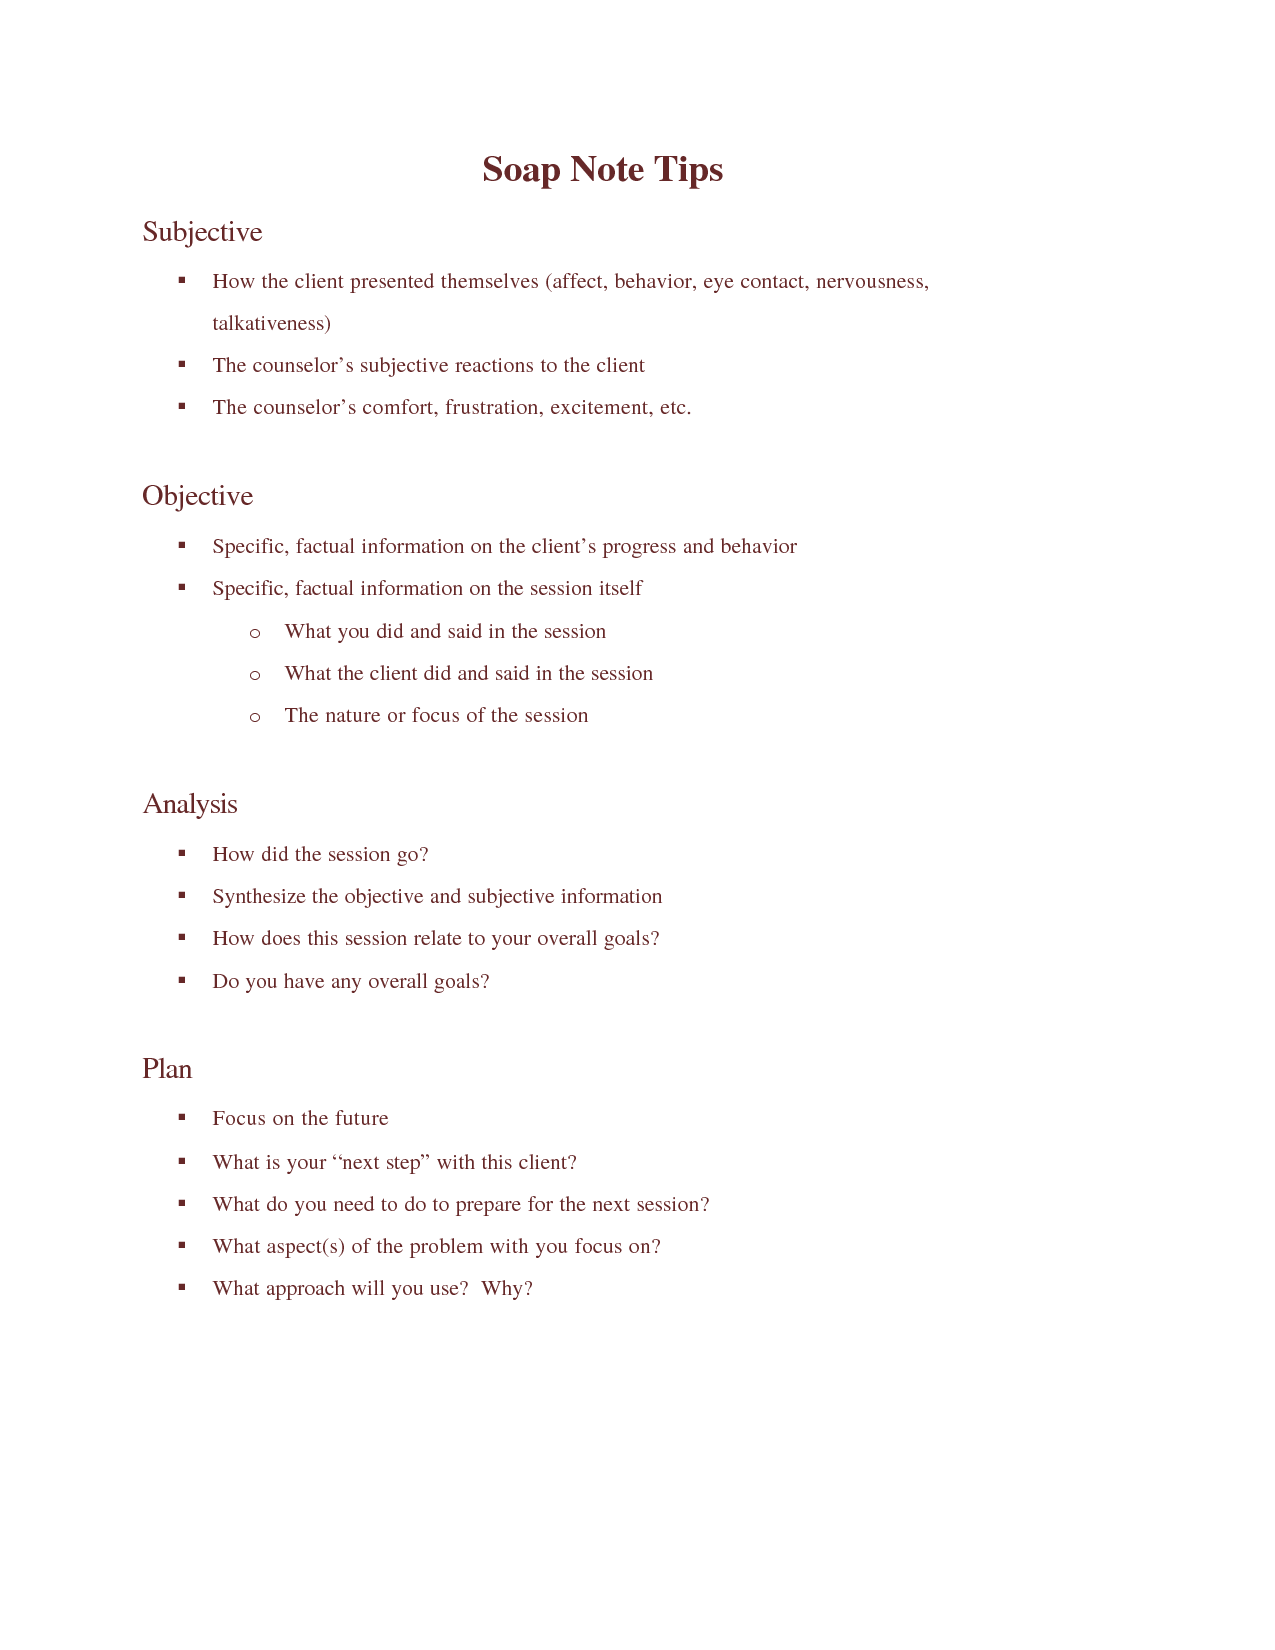 Soap Note Templates In This Soap Note And Progress Note Kit Available